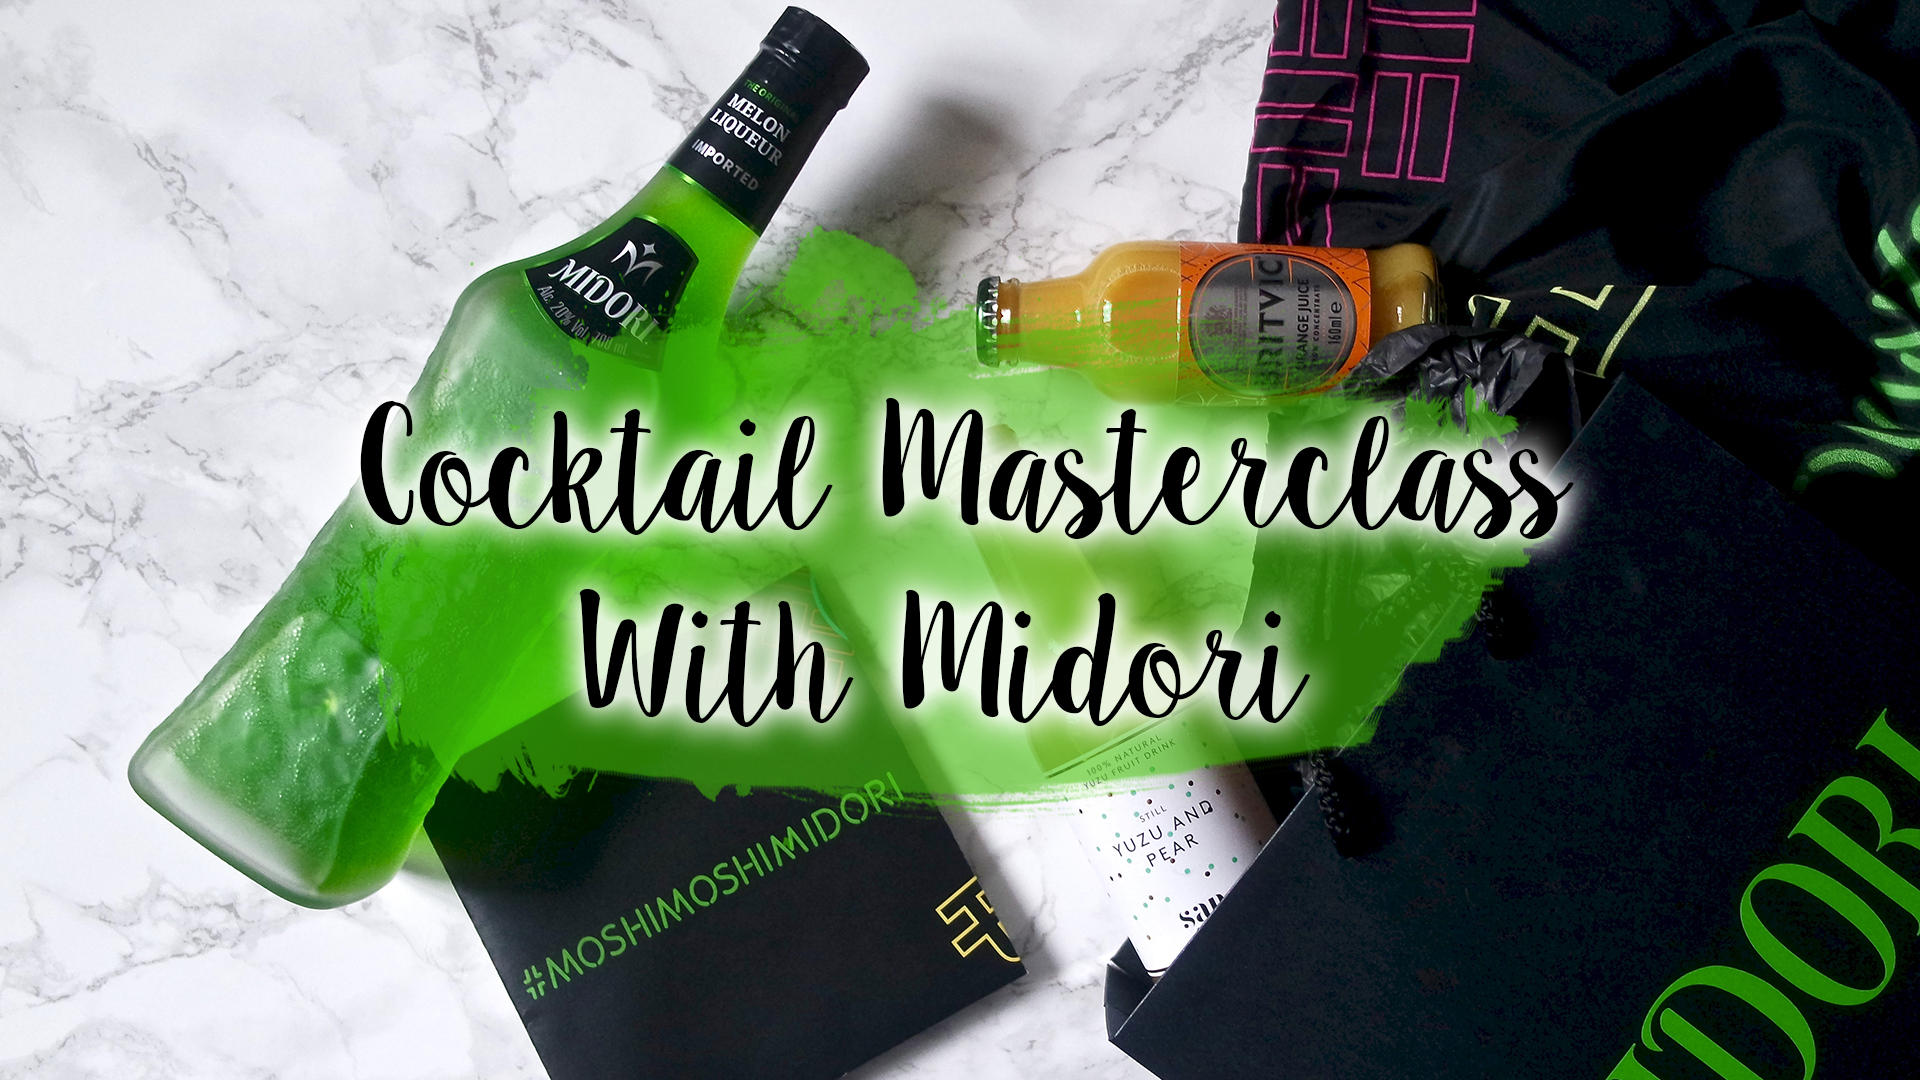 #MoshiMoshiMidori - Cocktail Masterclass With Midori || Food & Drink